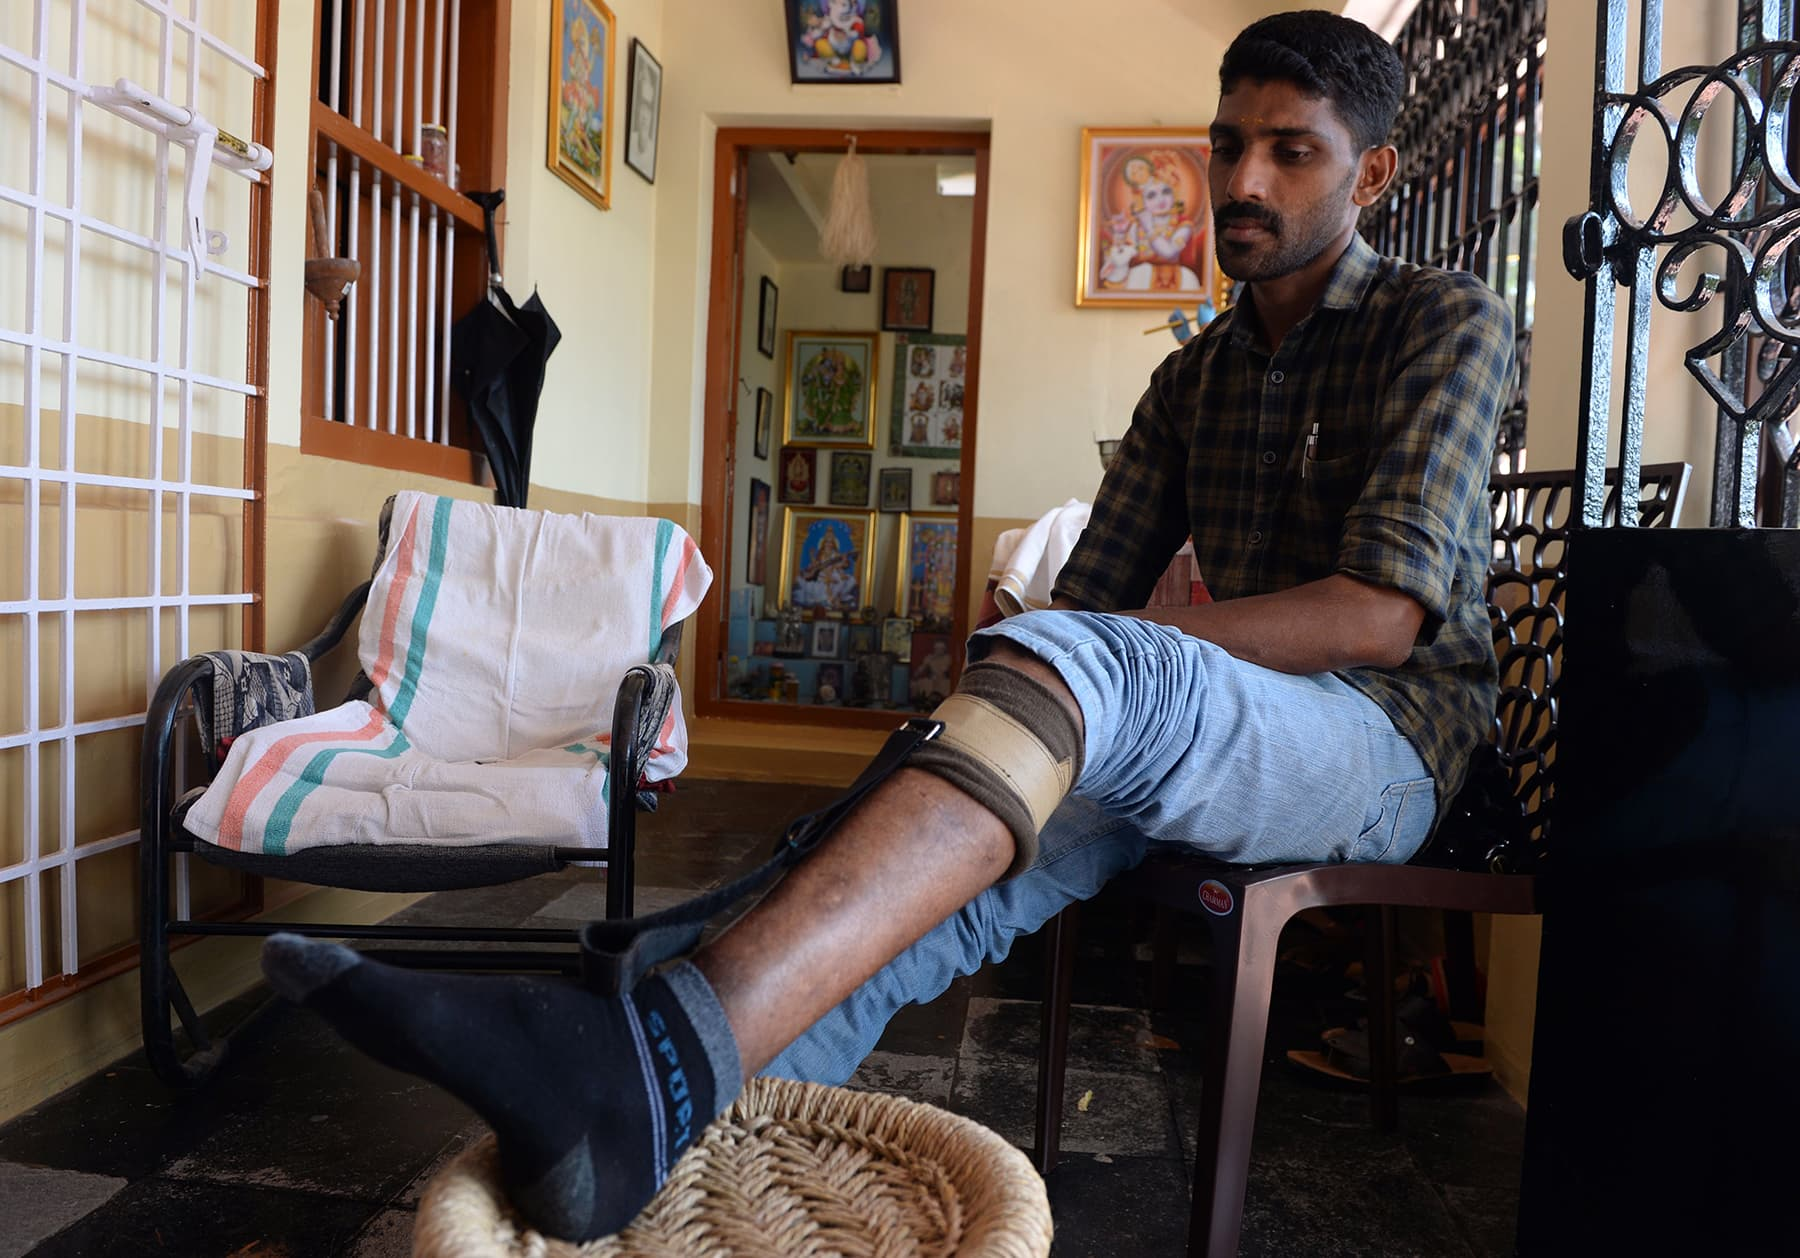 Praveen K.K., 36, a member of the Rashtriya Swayamsevak Sangh (RSS) and a political attack victim, shows his leg that was injured in political violence, during an interview with AFP at Thalaserry in the southern Indian state of Kerala. — AFP